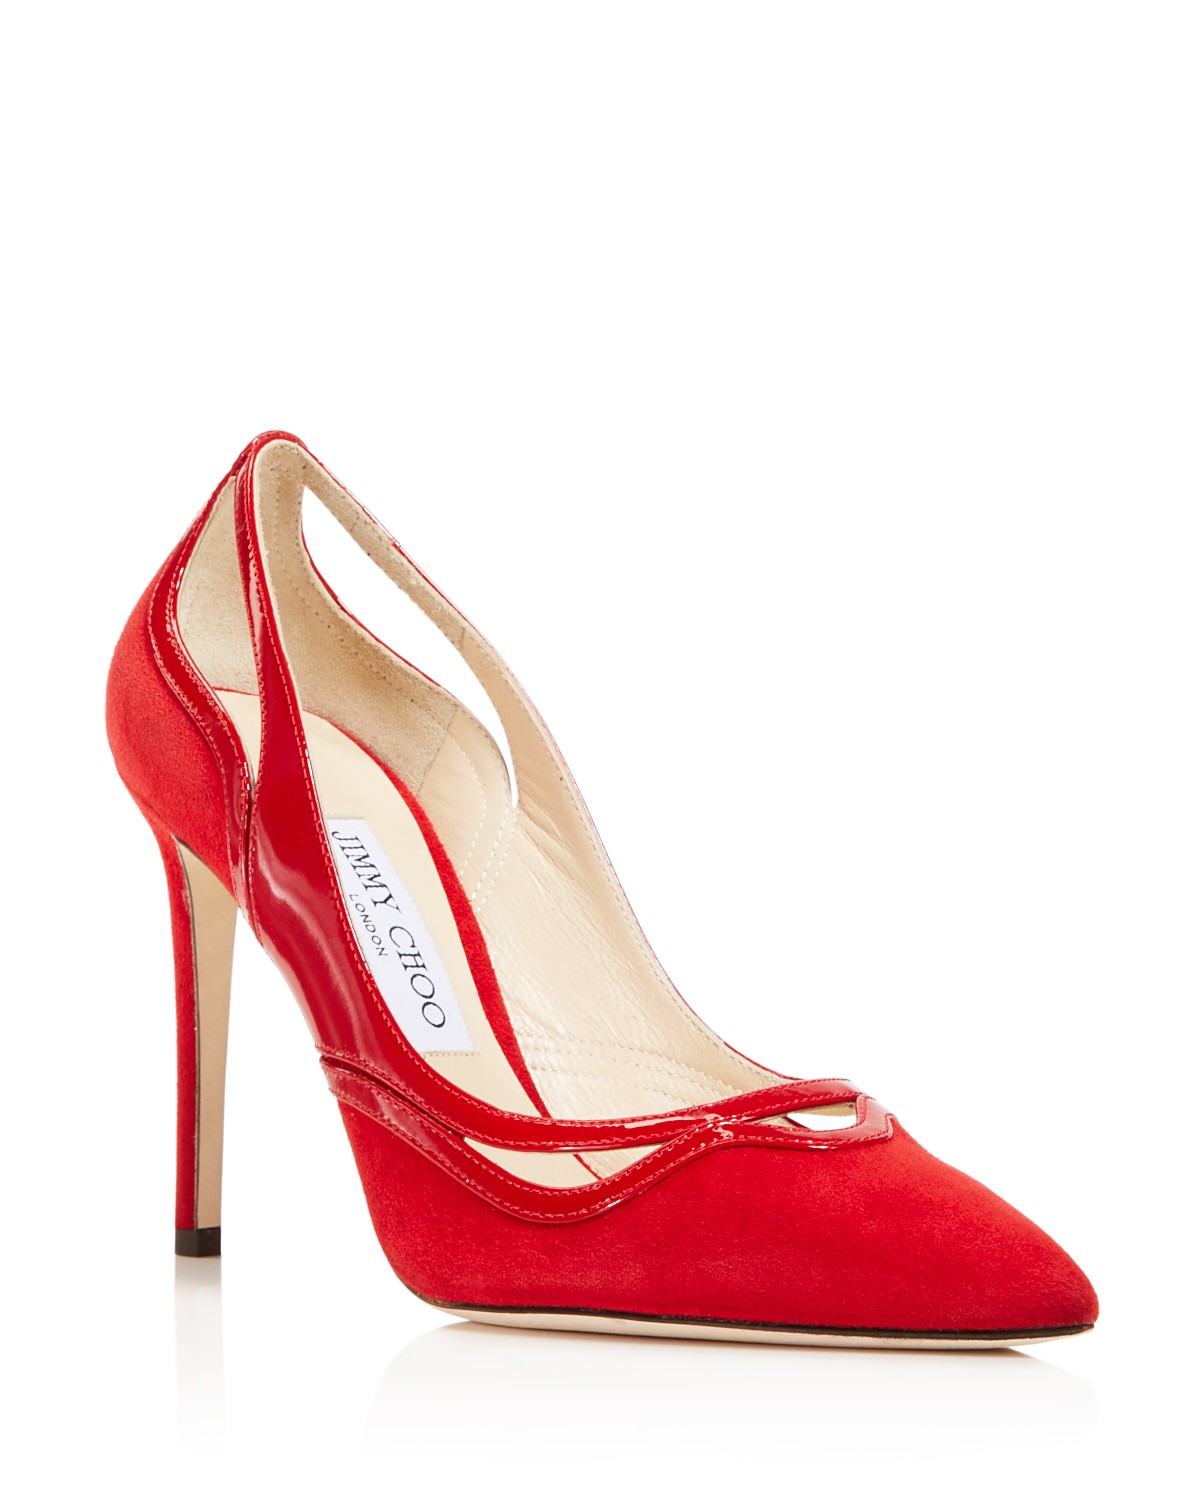 Jimmy choo Women's Hickory 100 Suede & Patent Leather Cutout High-Heel Pumps gZhTBRGl